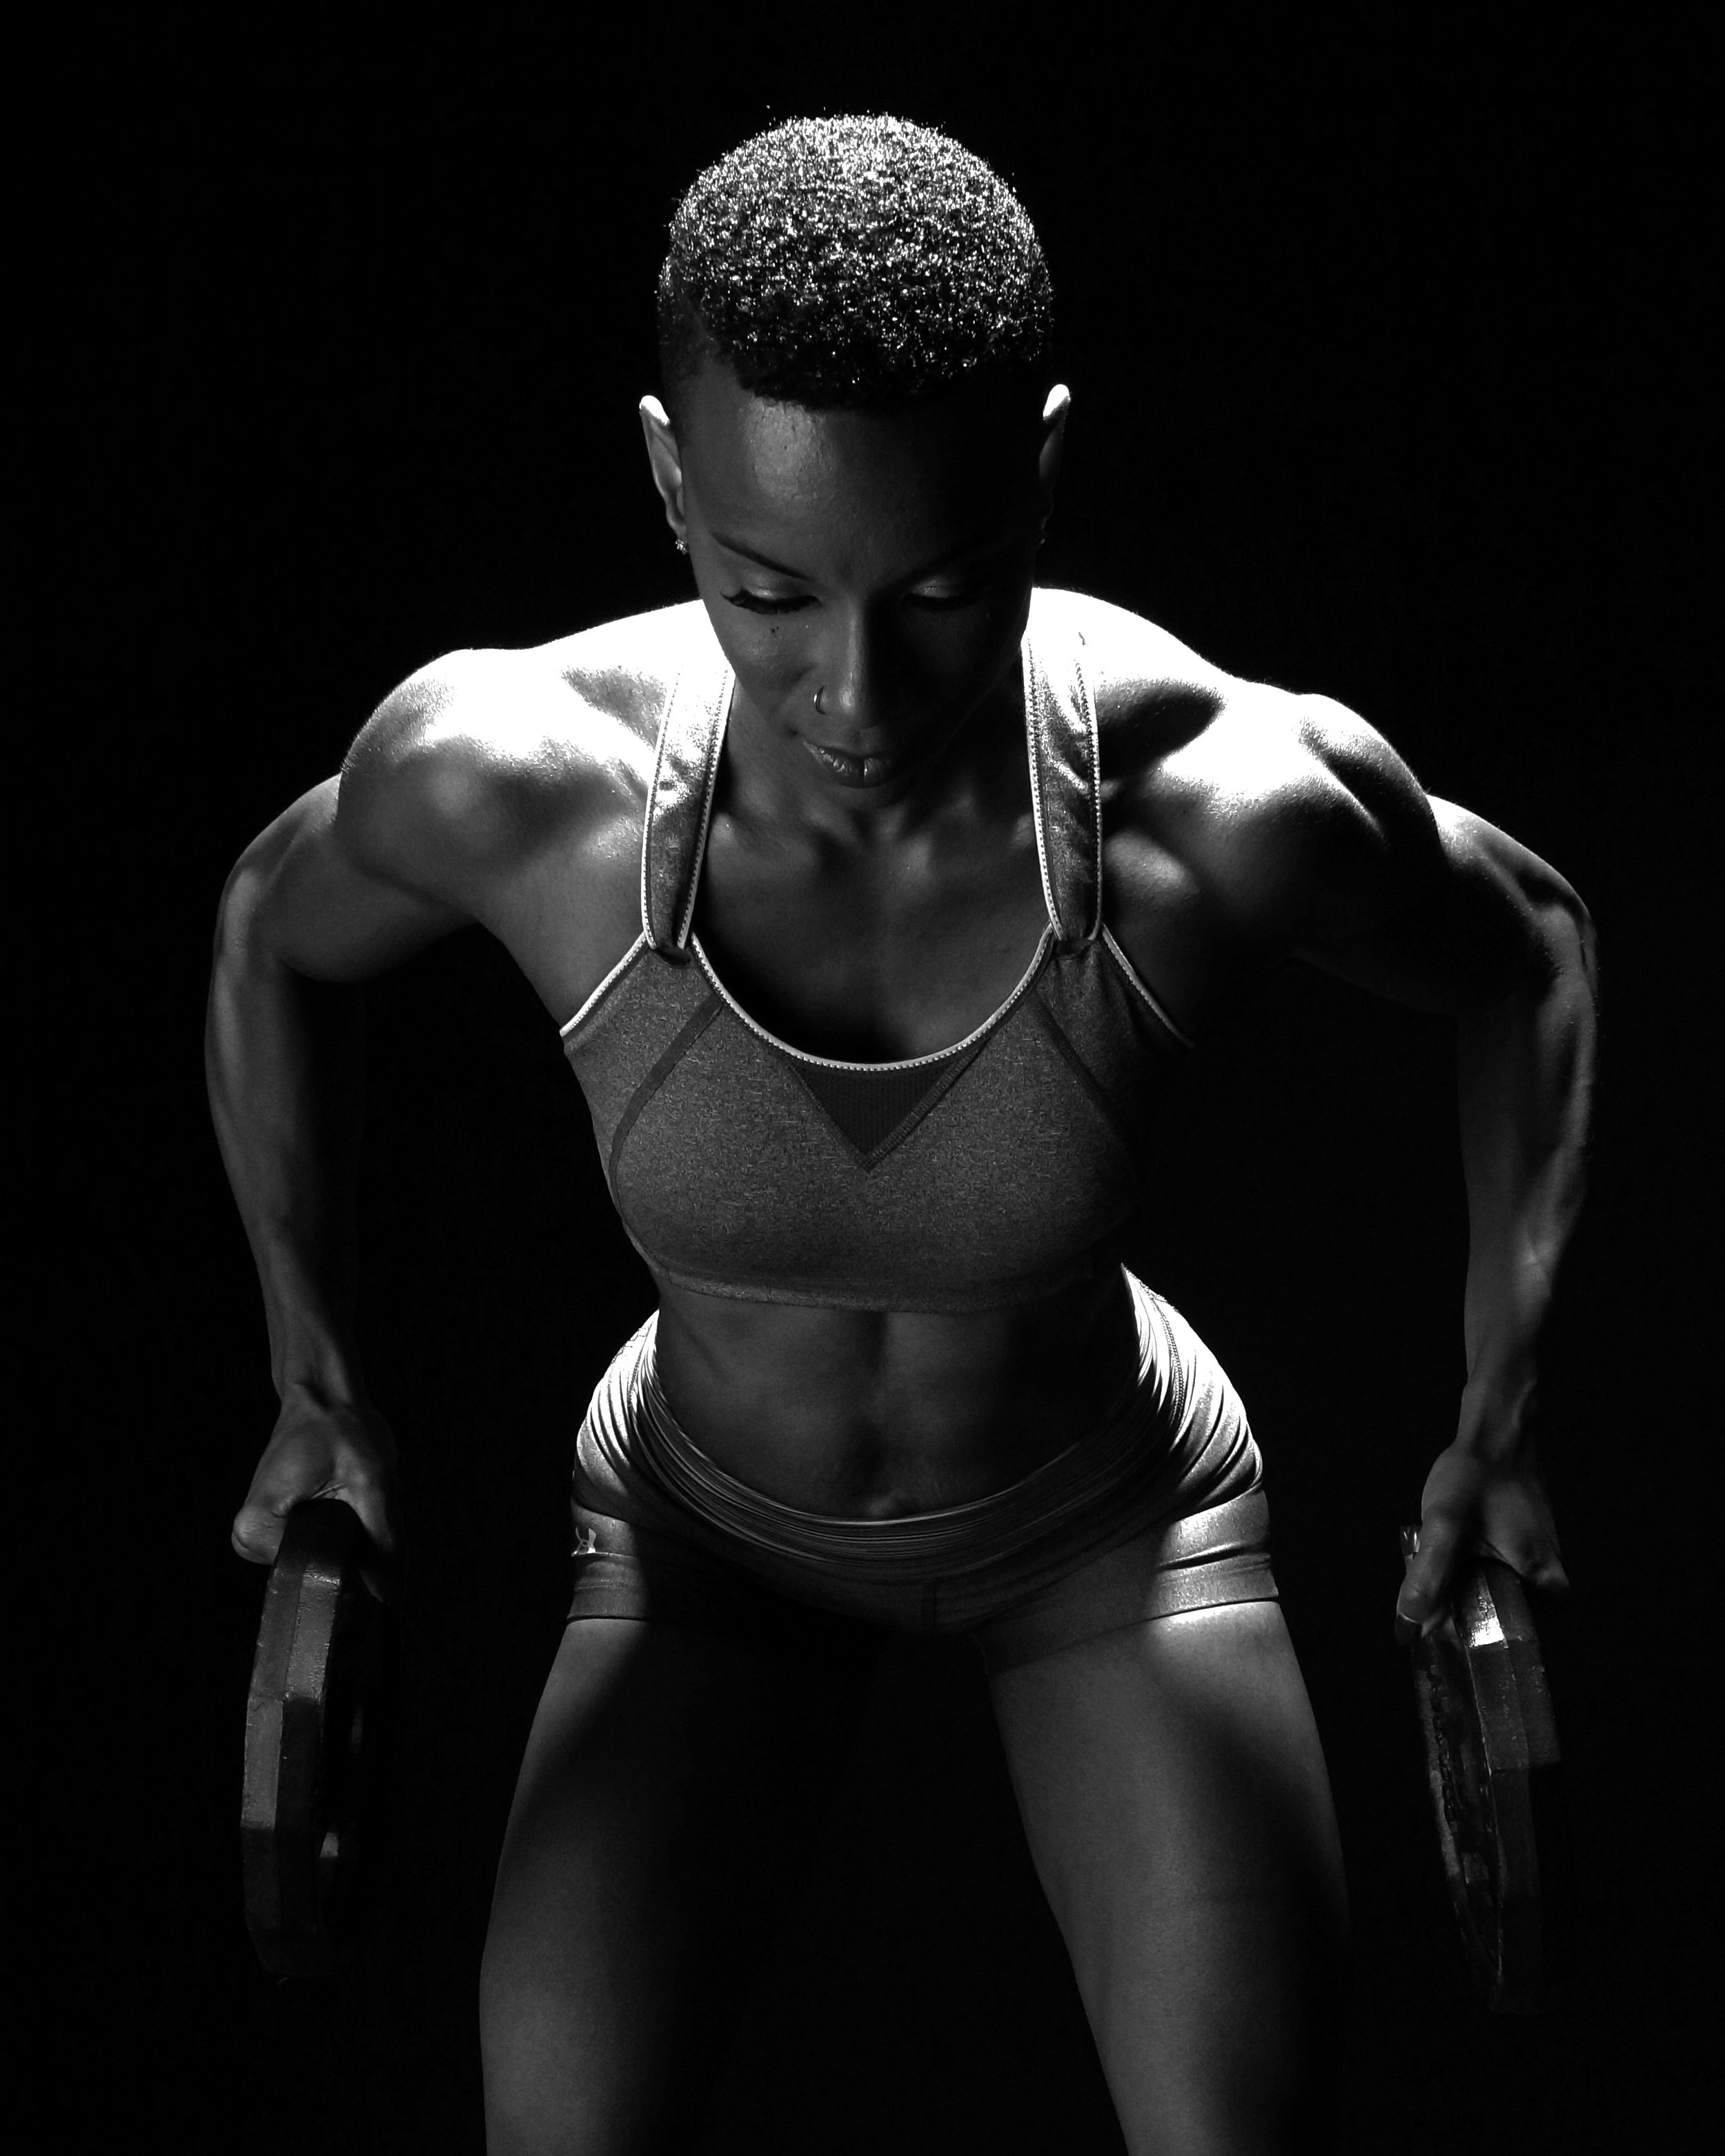 BarryFreeman Photography: Fitness